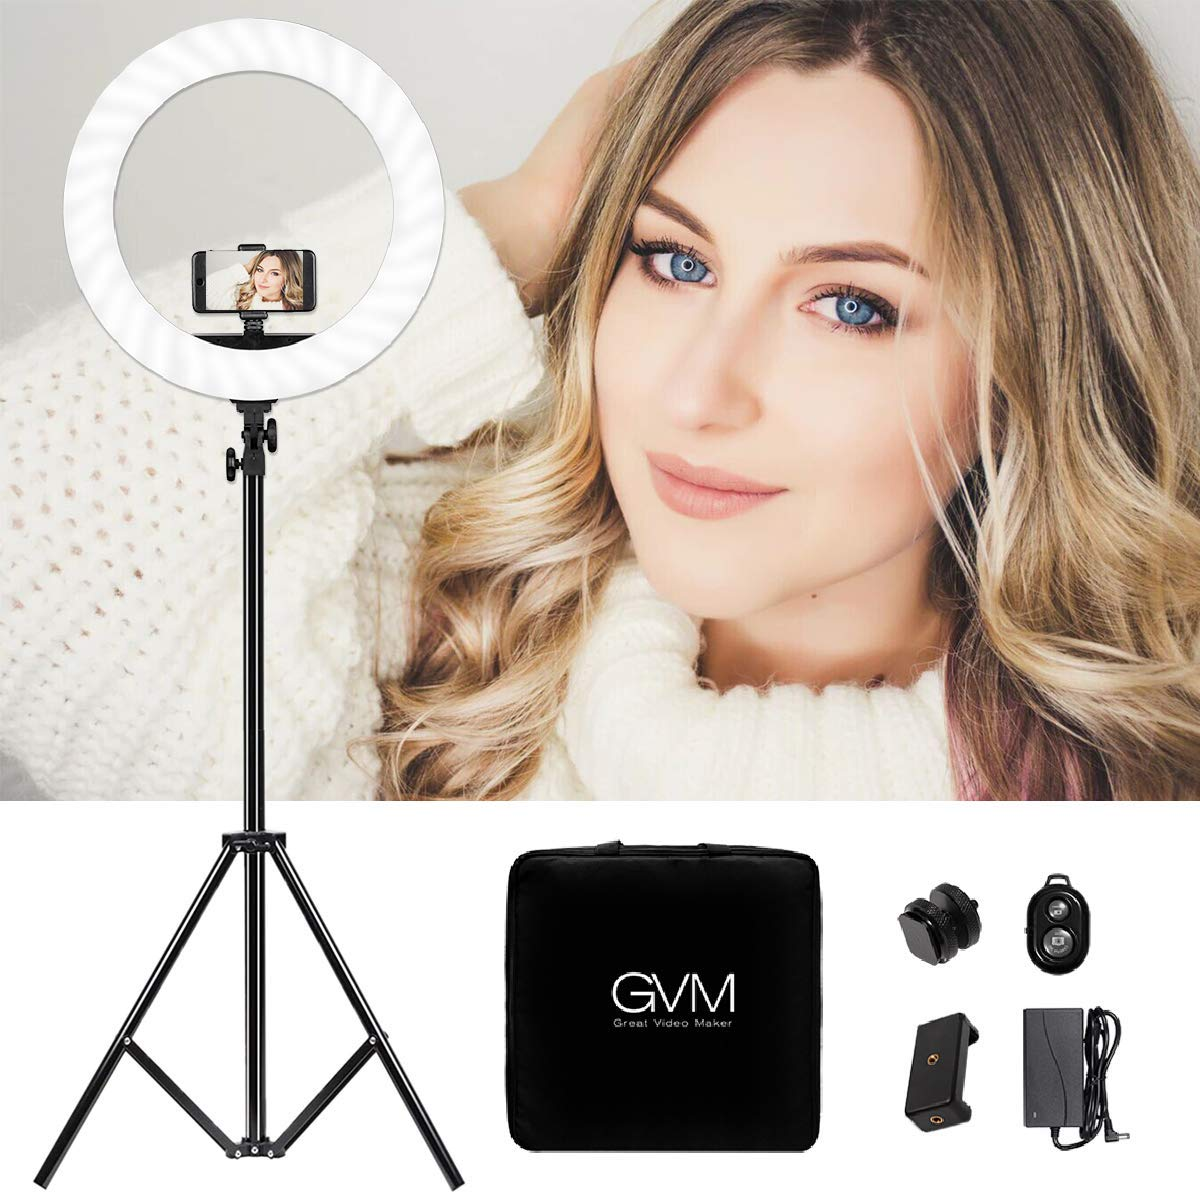 GVM Ring Light kit 19-inch, Professional CRI97+  Bi-Color Led Ring Light with LCD Display, Stand, Bluetooth Receiver, Plug-in Cable ,Phone holder,Bag,for Makeup Lighting, YouTube, Portrait Video Shoot by GVM Great Video Maker